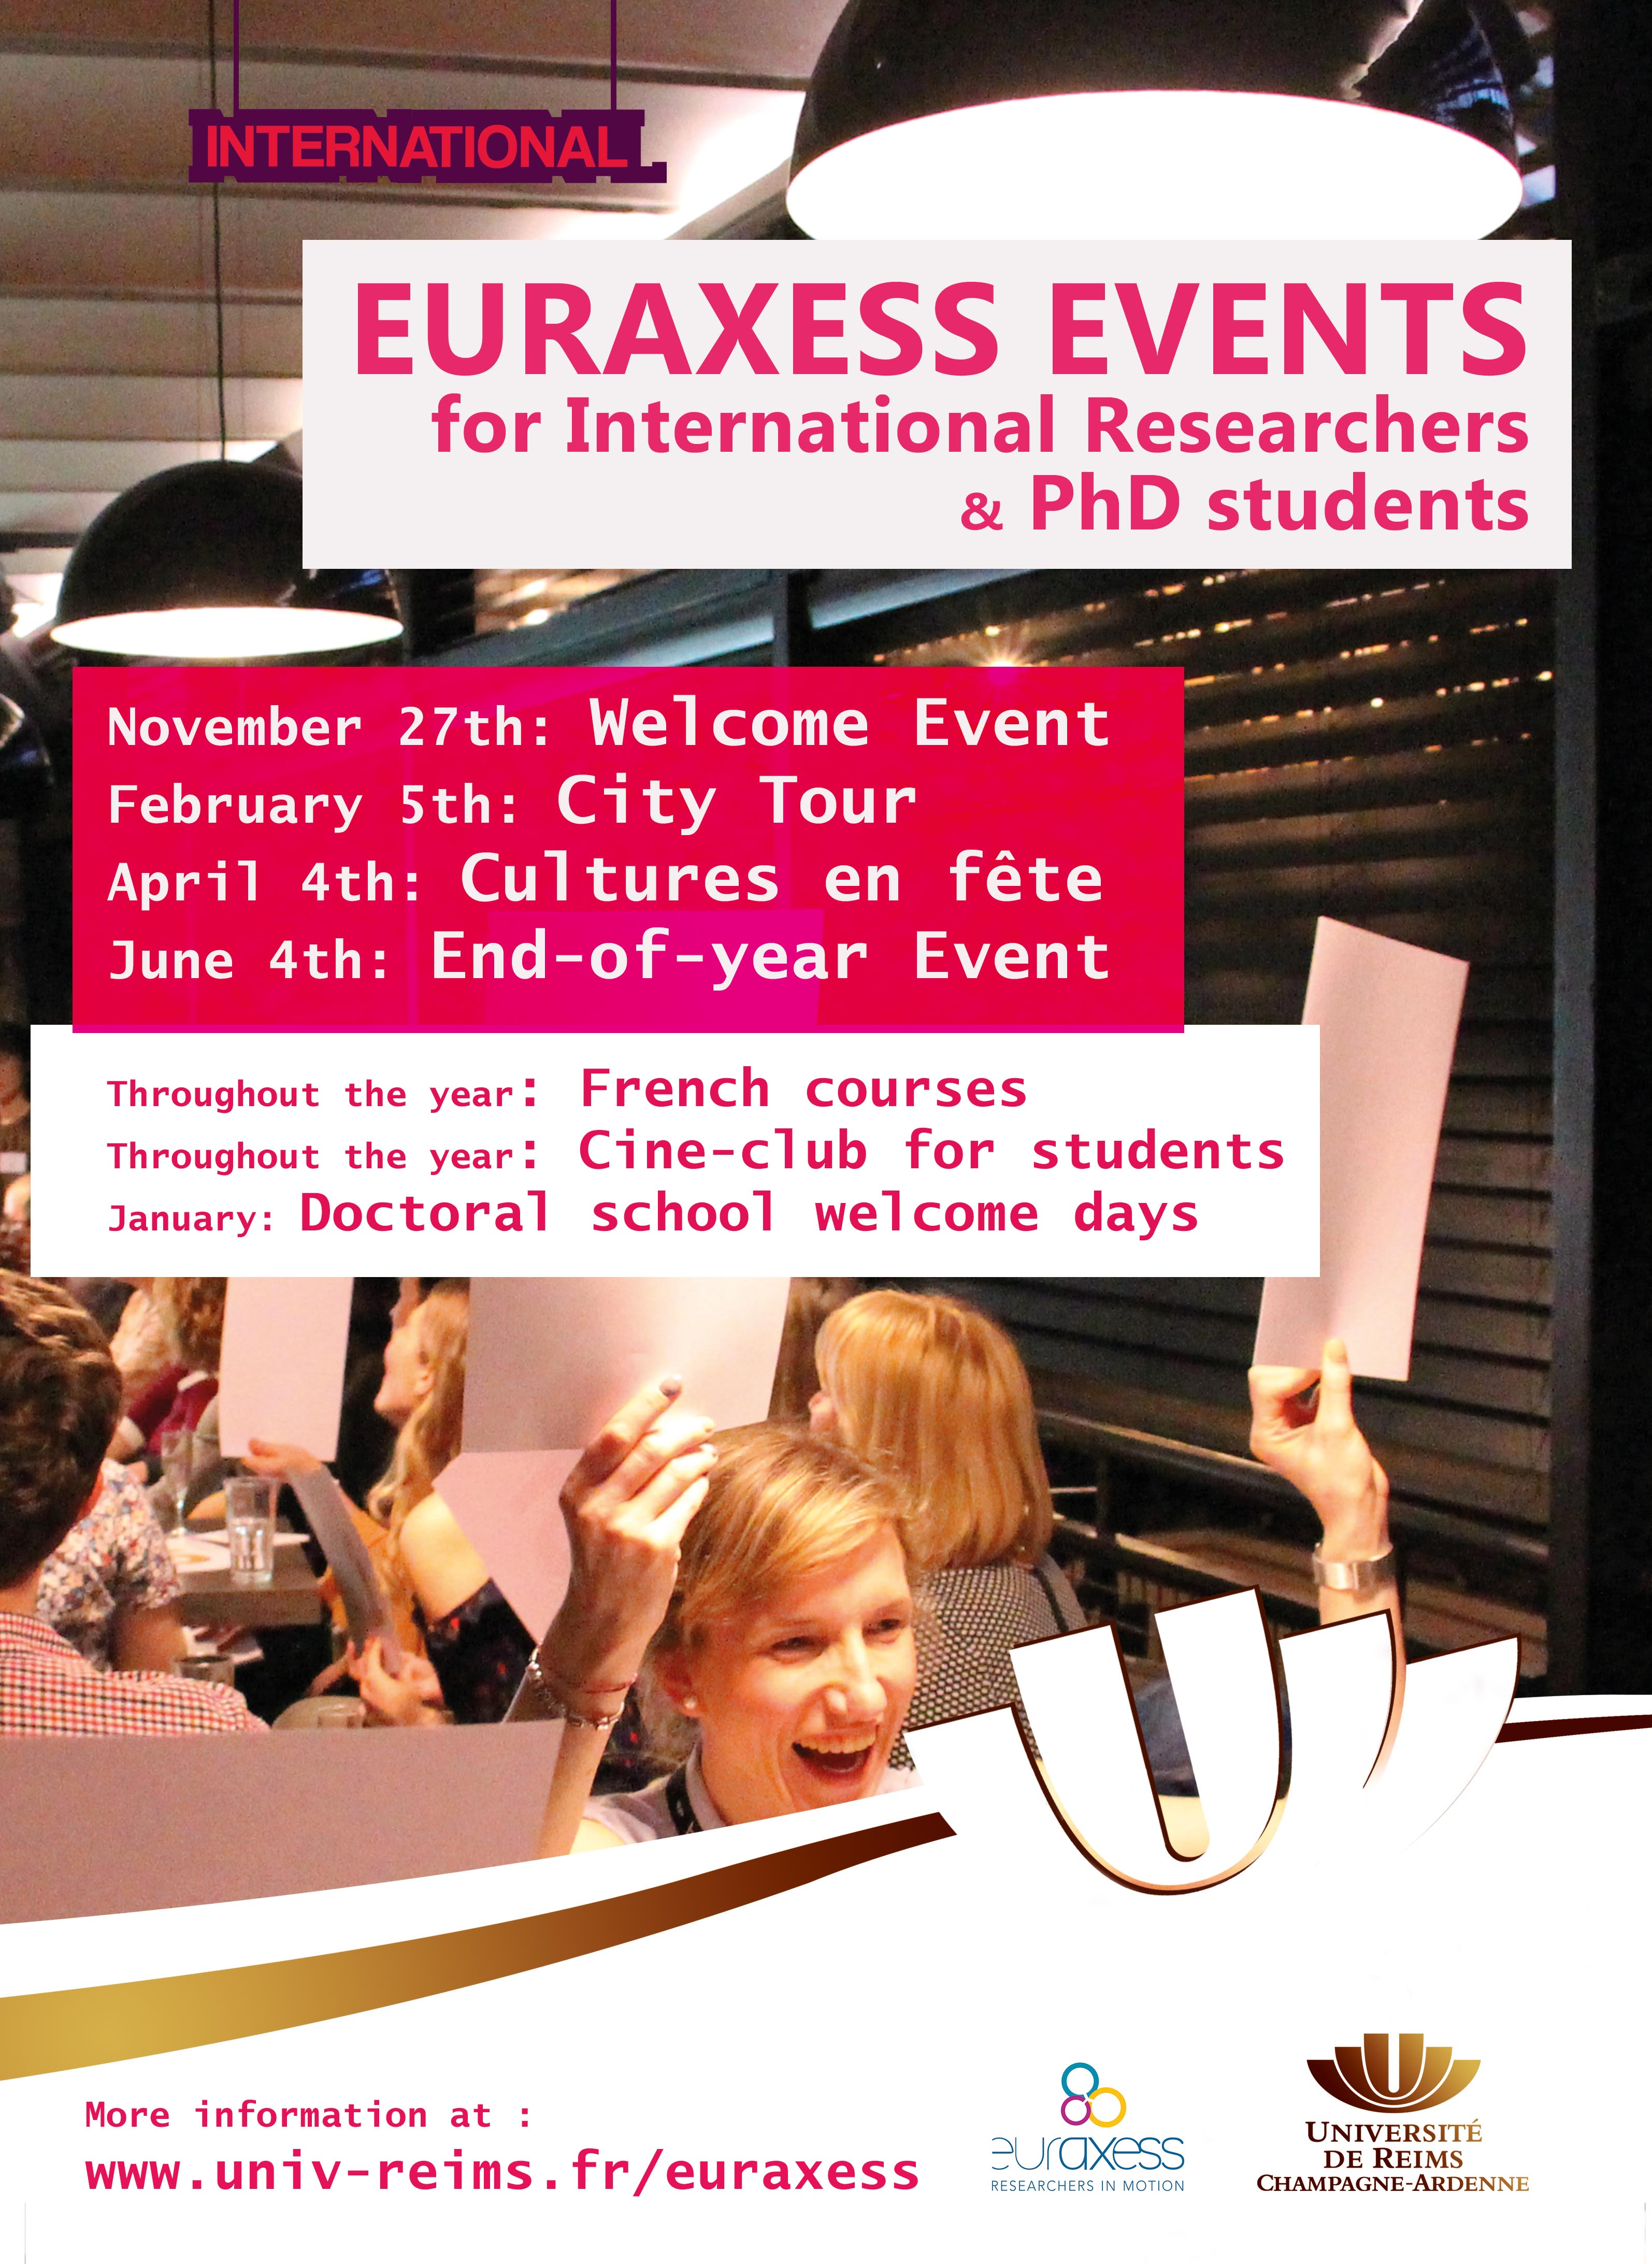 euraxess events